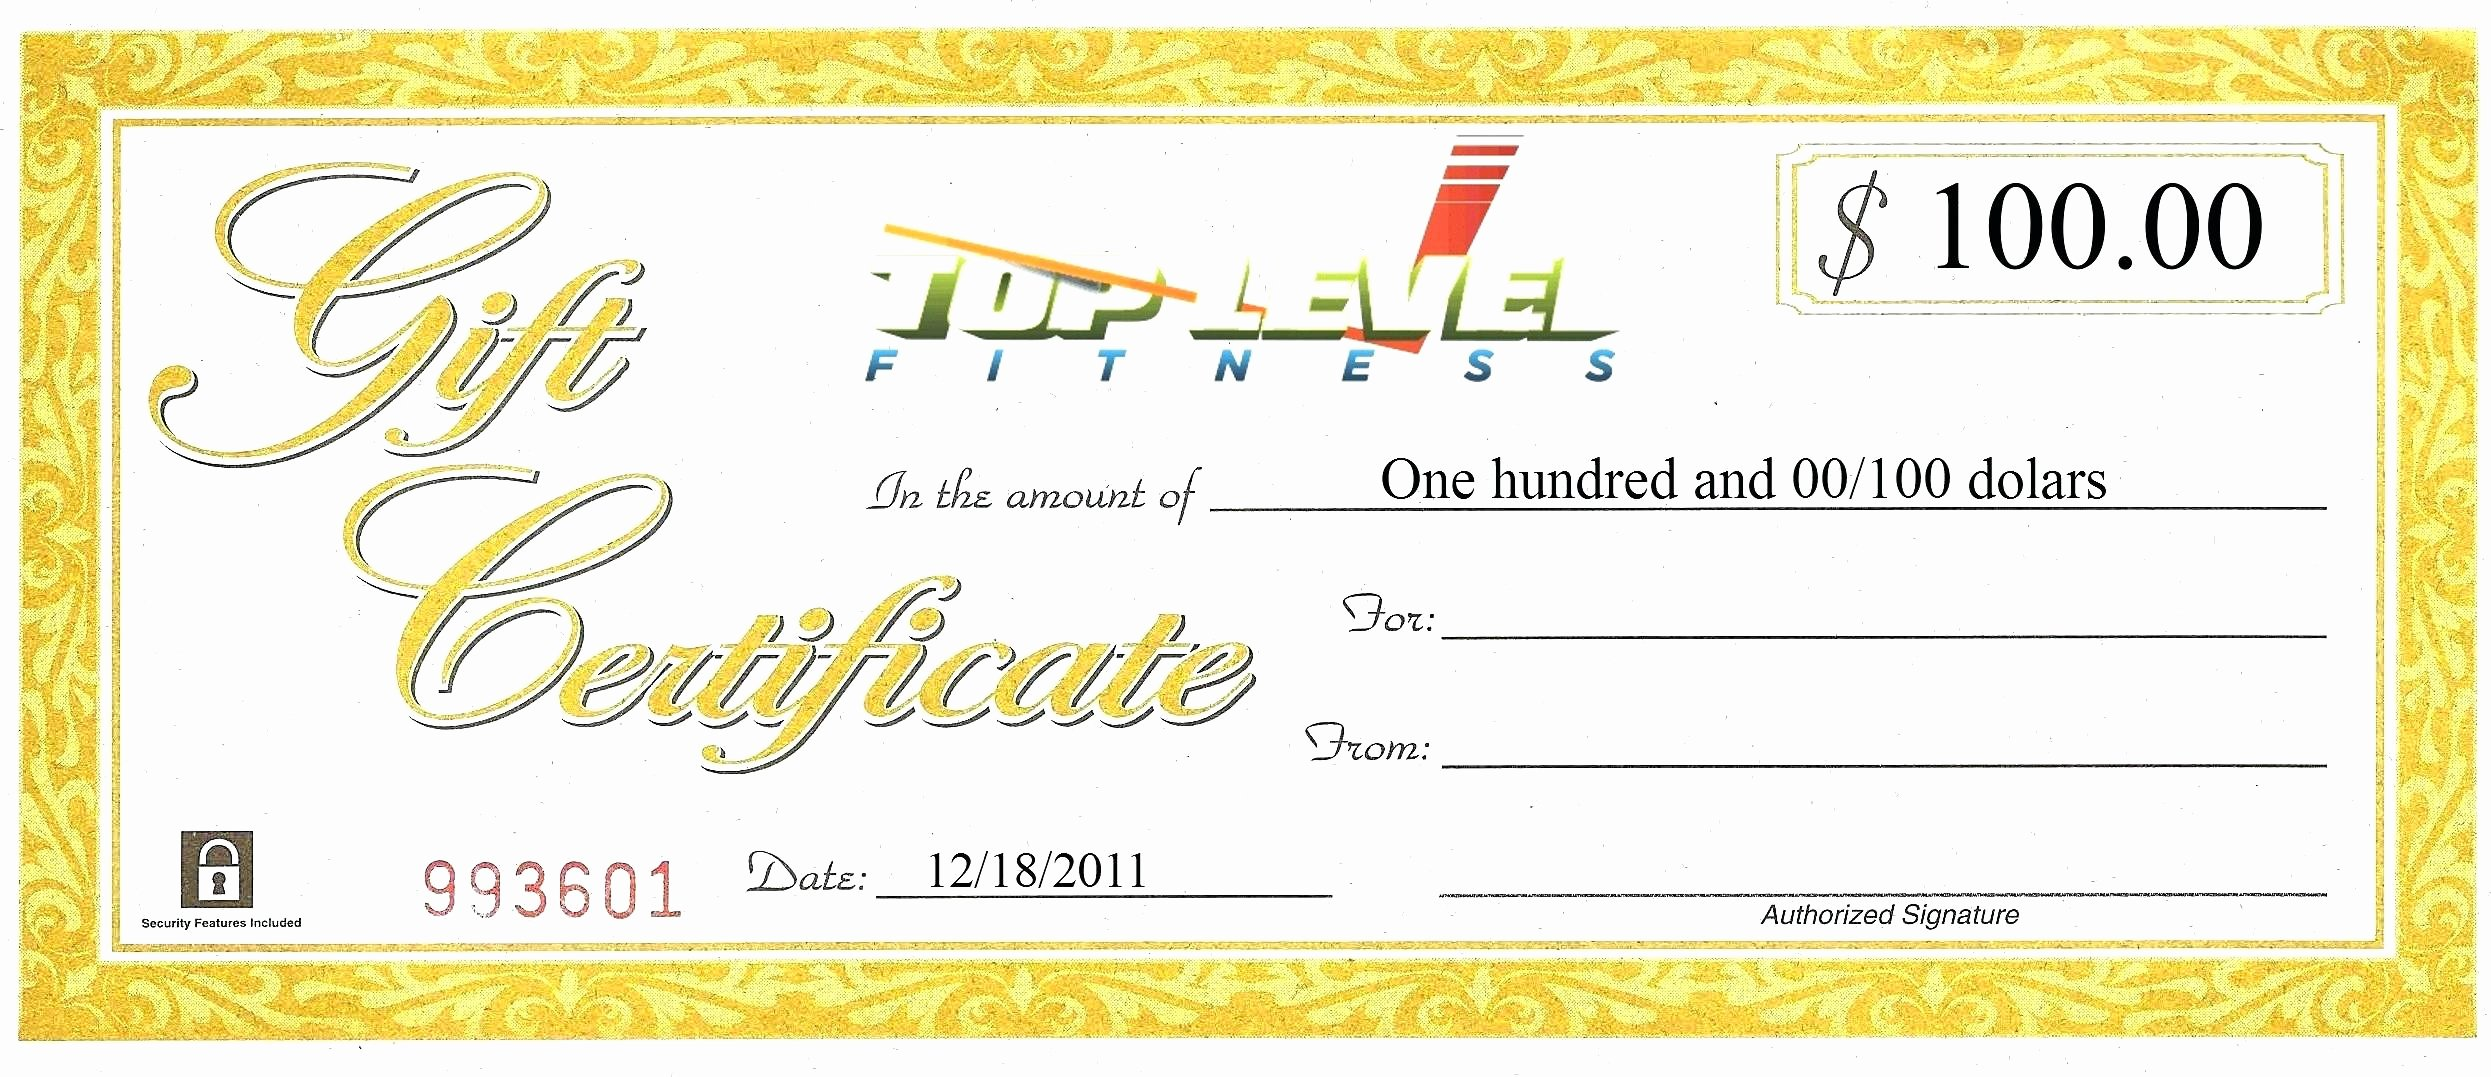 Car Wash Gift Certificate Template Awesome Car Gift Certificate Template Car Detailing Price List